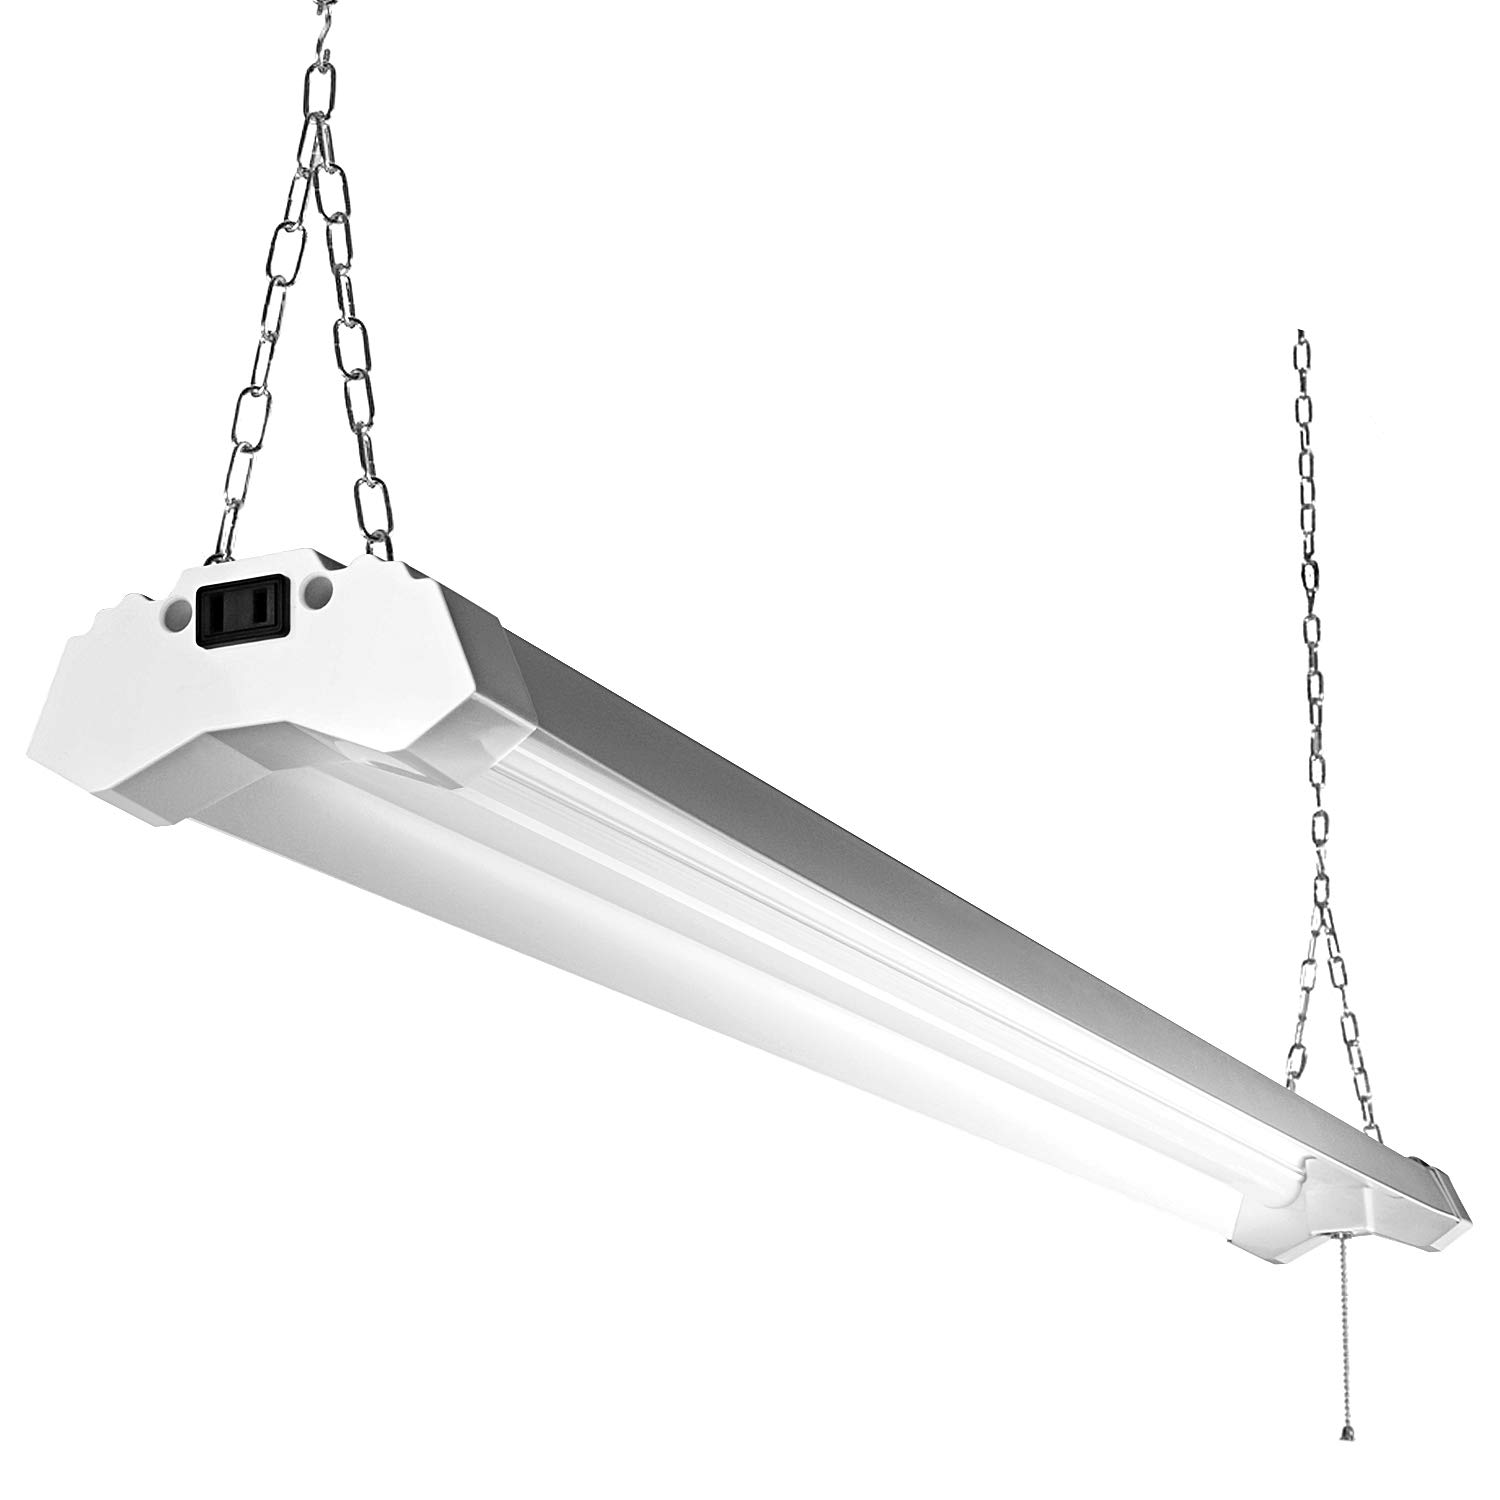 Linkable led utility shop light 4ft 4800 lumens super bright 40w 5000k daylight etl certified led garage lights fixture durable led fixture with pull